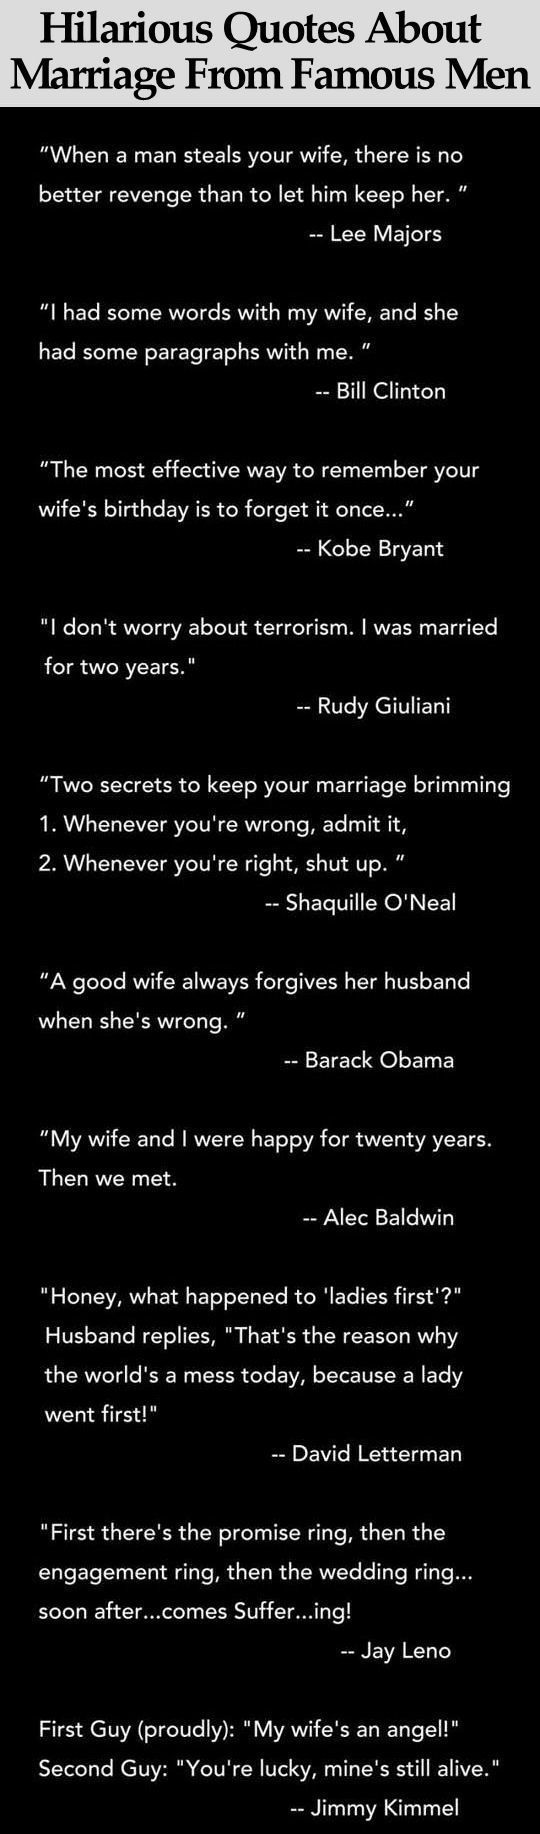 Hilarious Quotes About Marriage From Famous Men Funny Jokes Story Lol Funny Quote Funny Quo Wedding Quotes Funny Marriage Quotes Funny Funny Relationship Memes